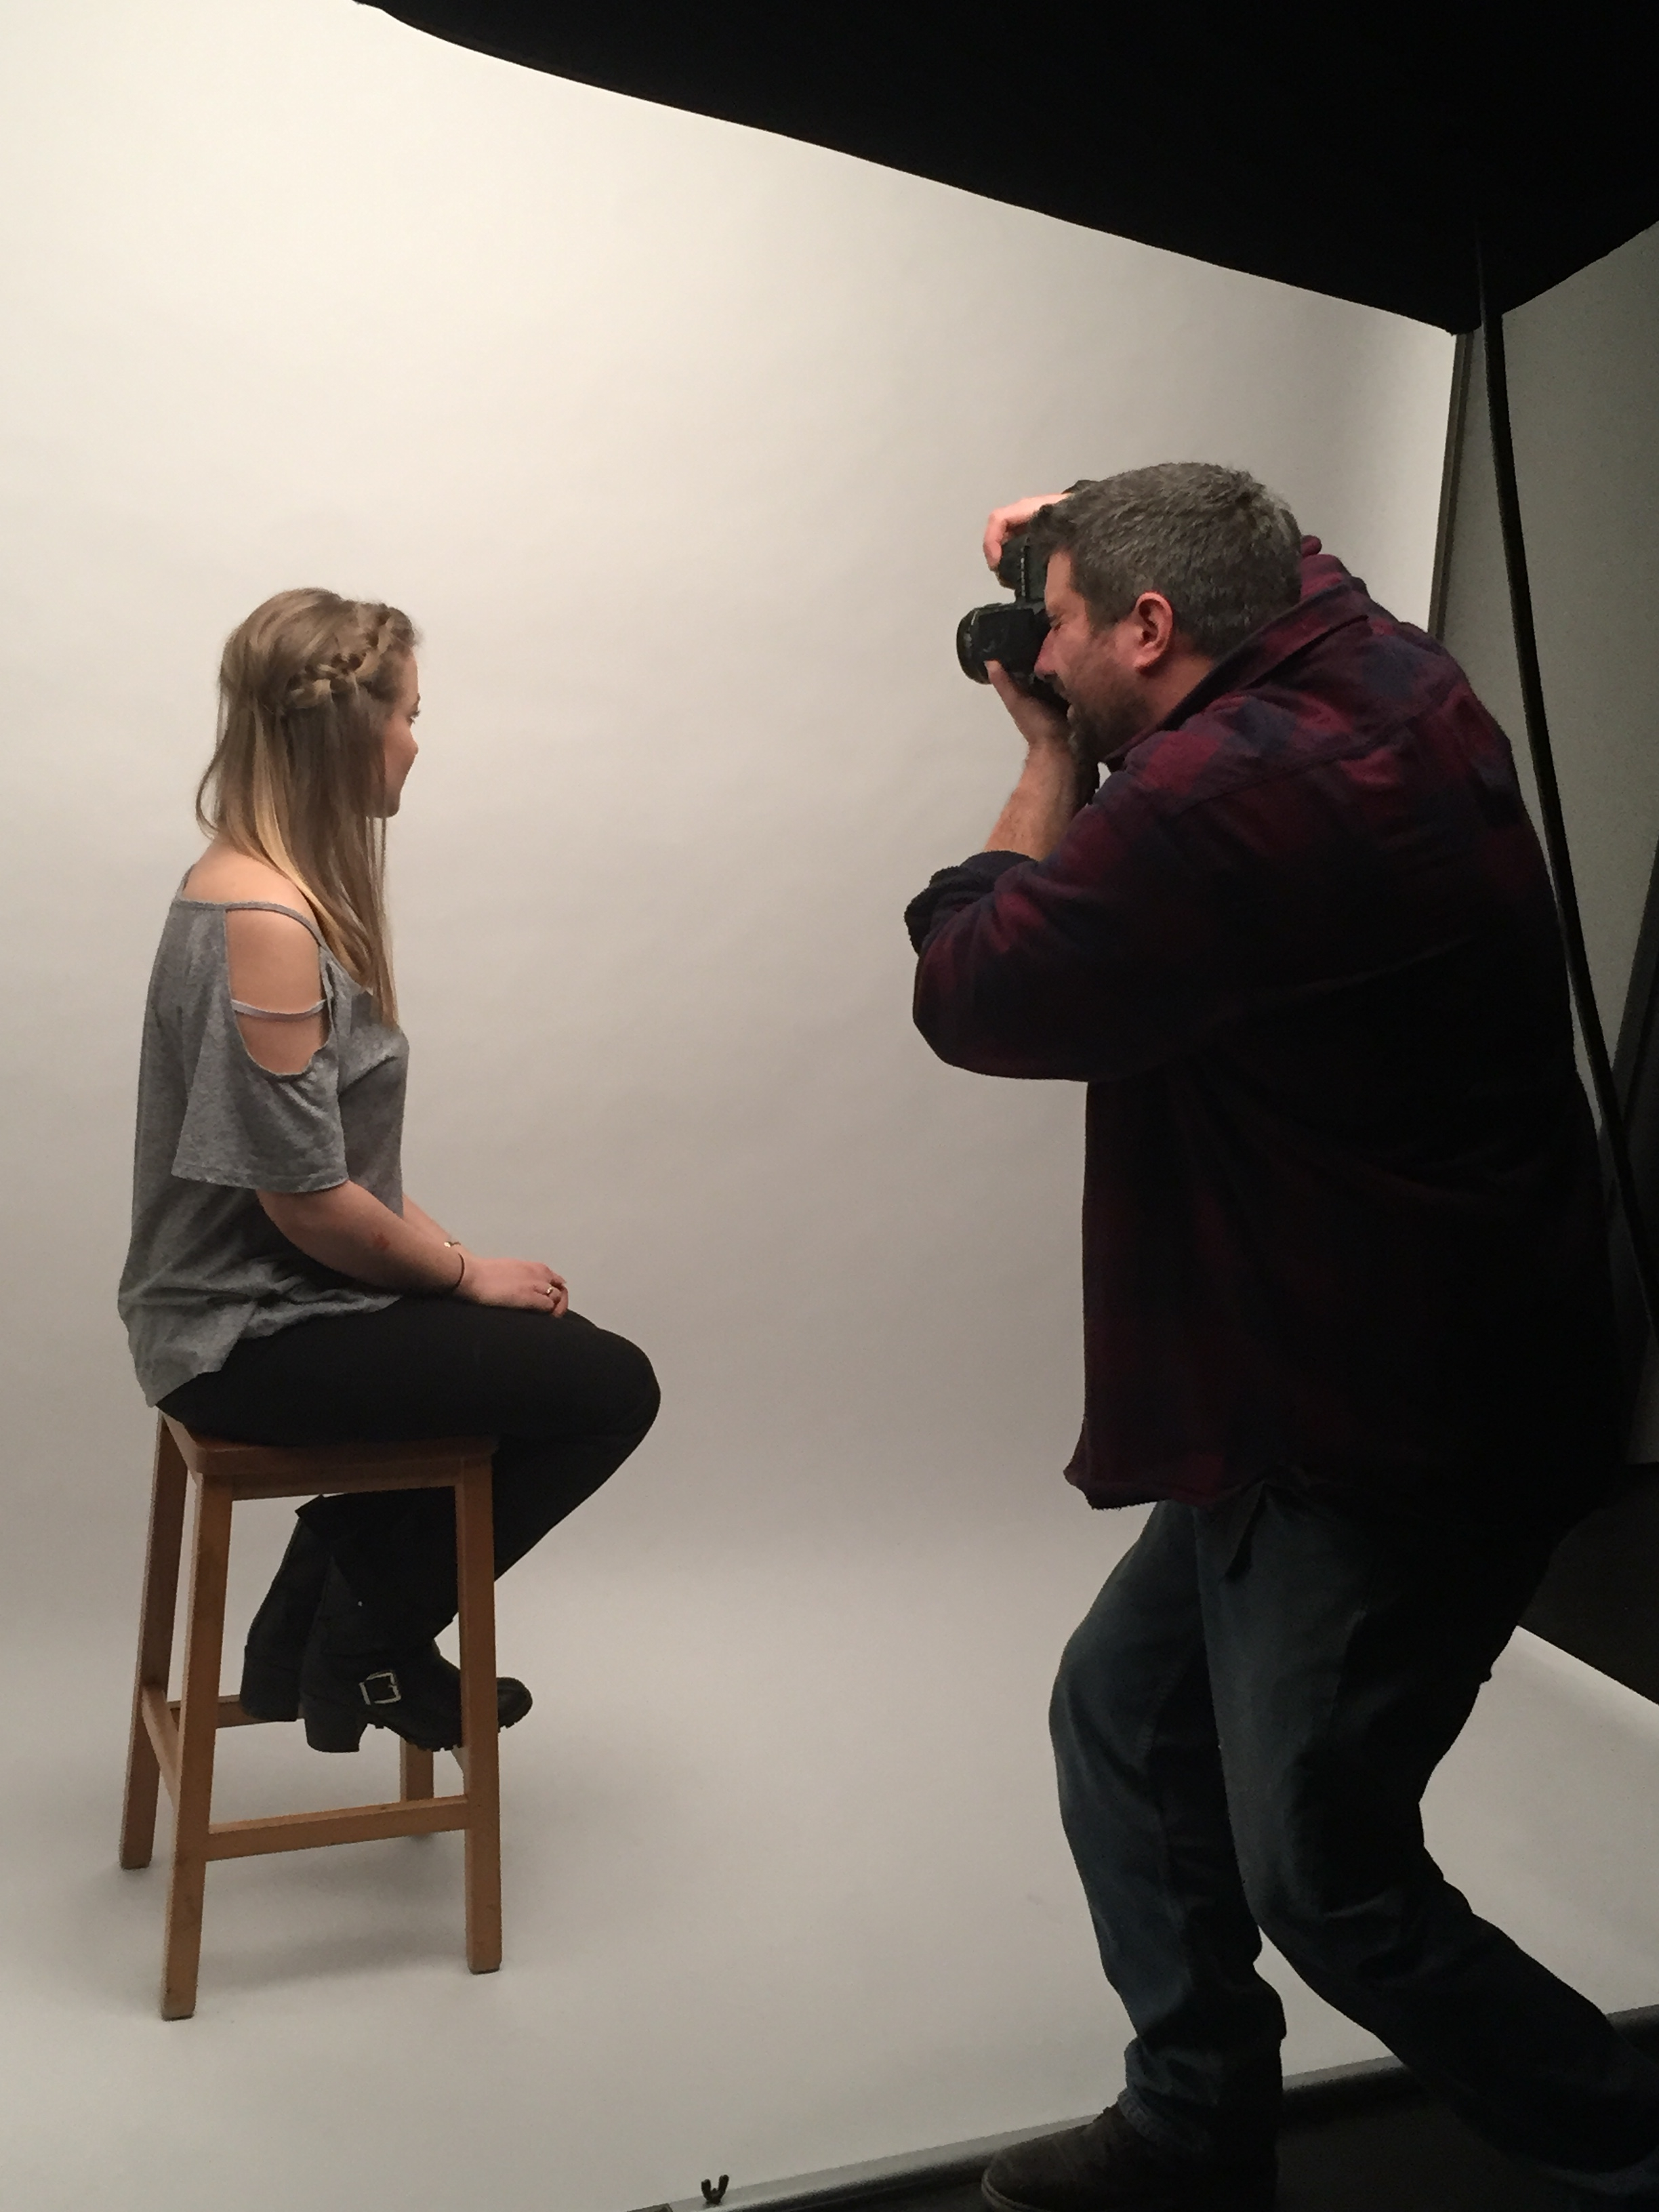 Photo shoot at Truro College